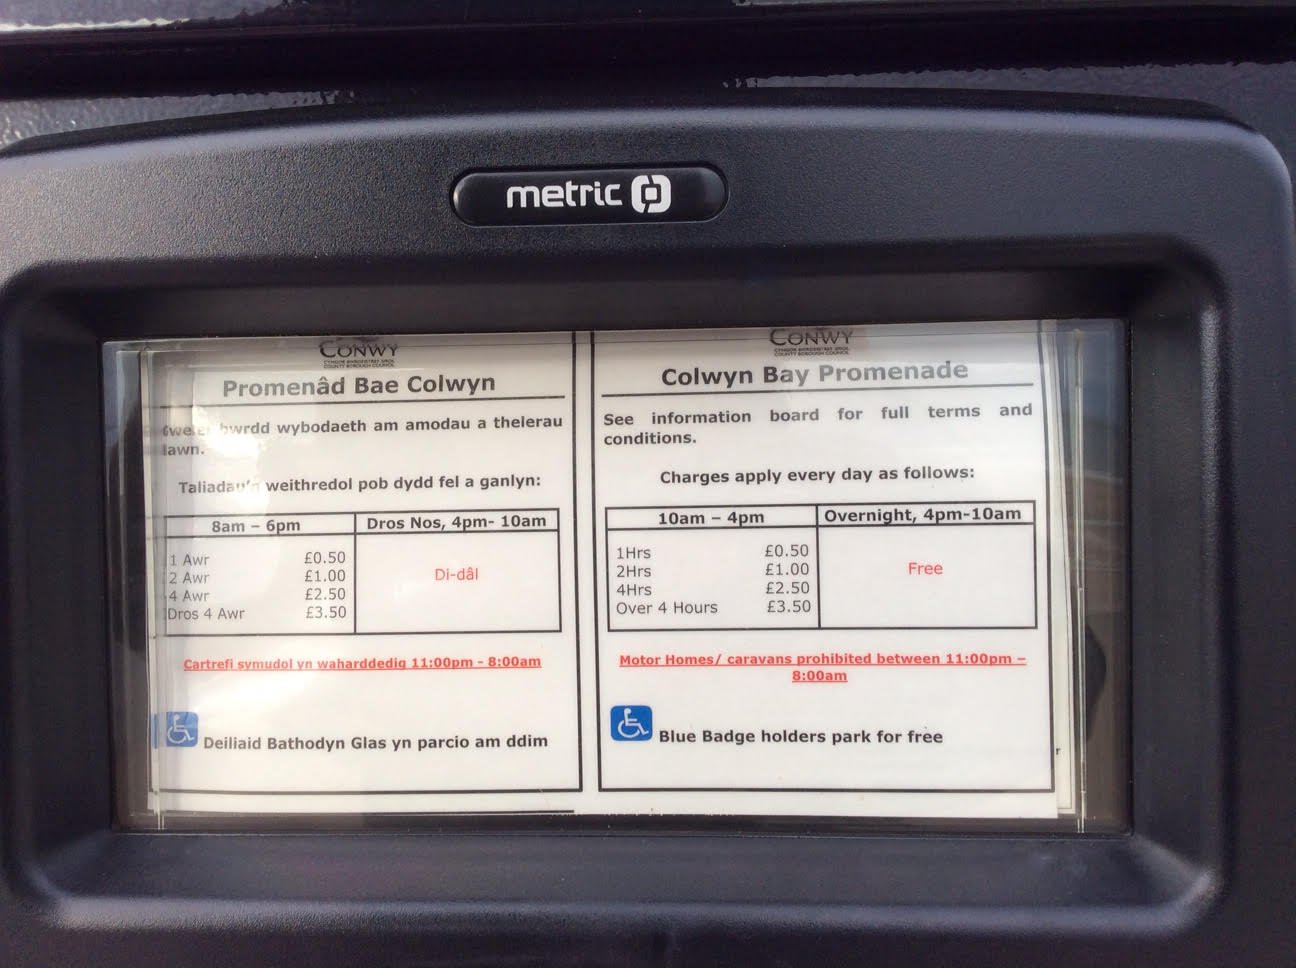 Parking Meter In Wales Says Welsh People Have To Pay Before English